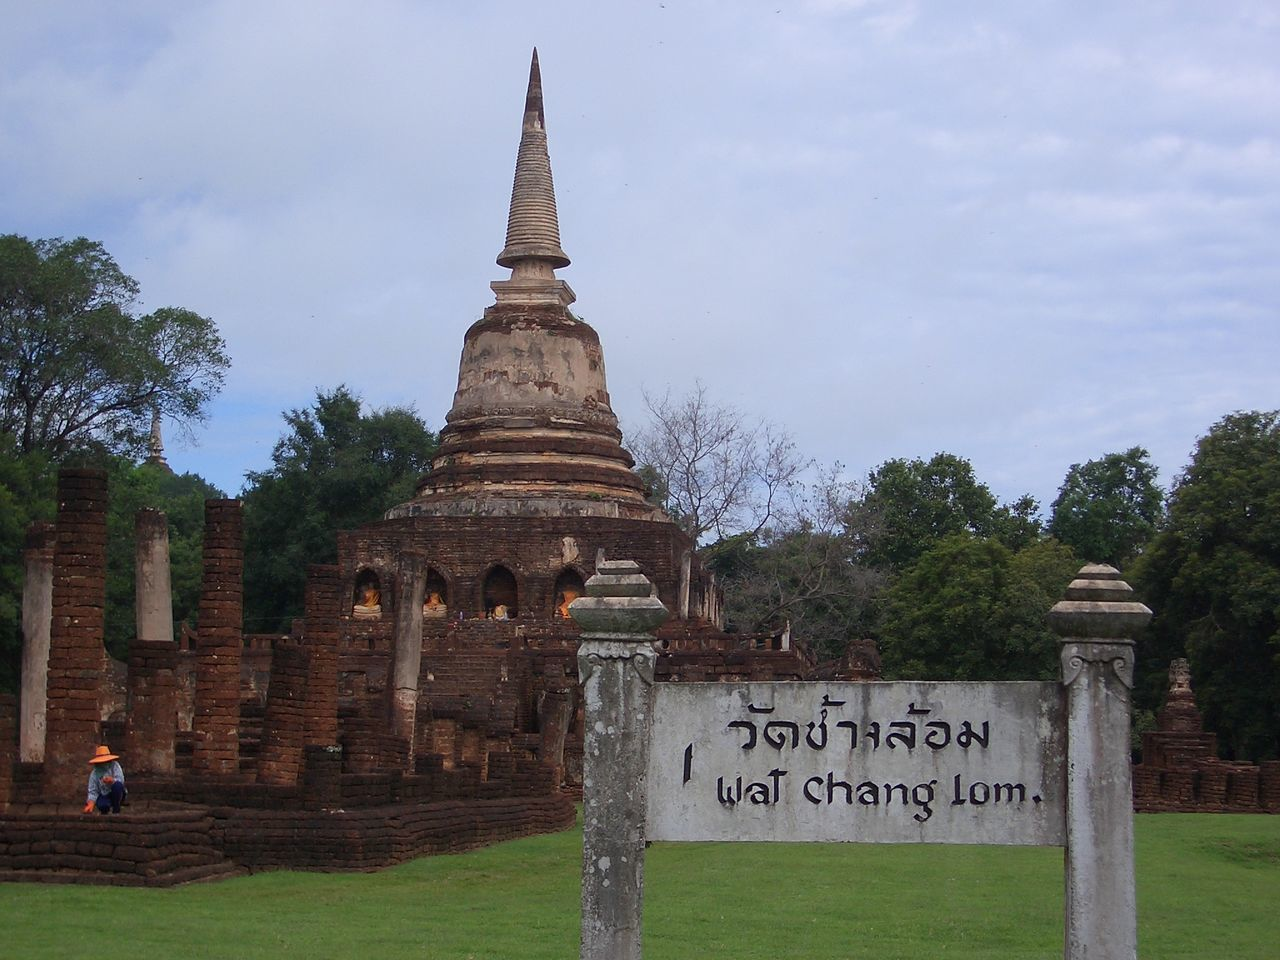 Wat Chang Lom Architecture Day History No People Outdoors Place Of Worship Religion Sukhothai Sukhothai, Thailand Sukhothaihistoricalpark Travel Destinations Tree BUDDHISM IS LOVE